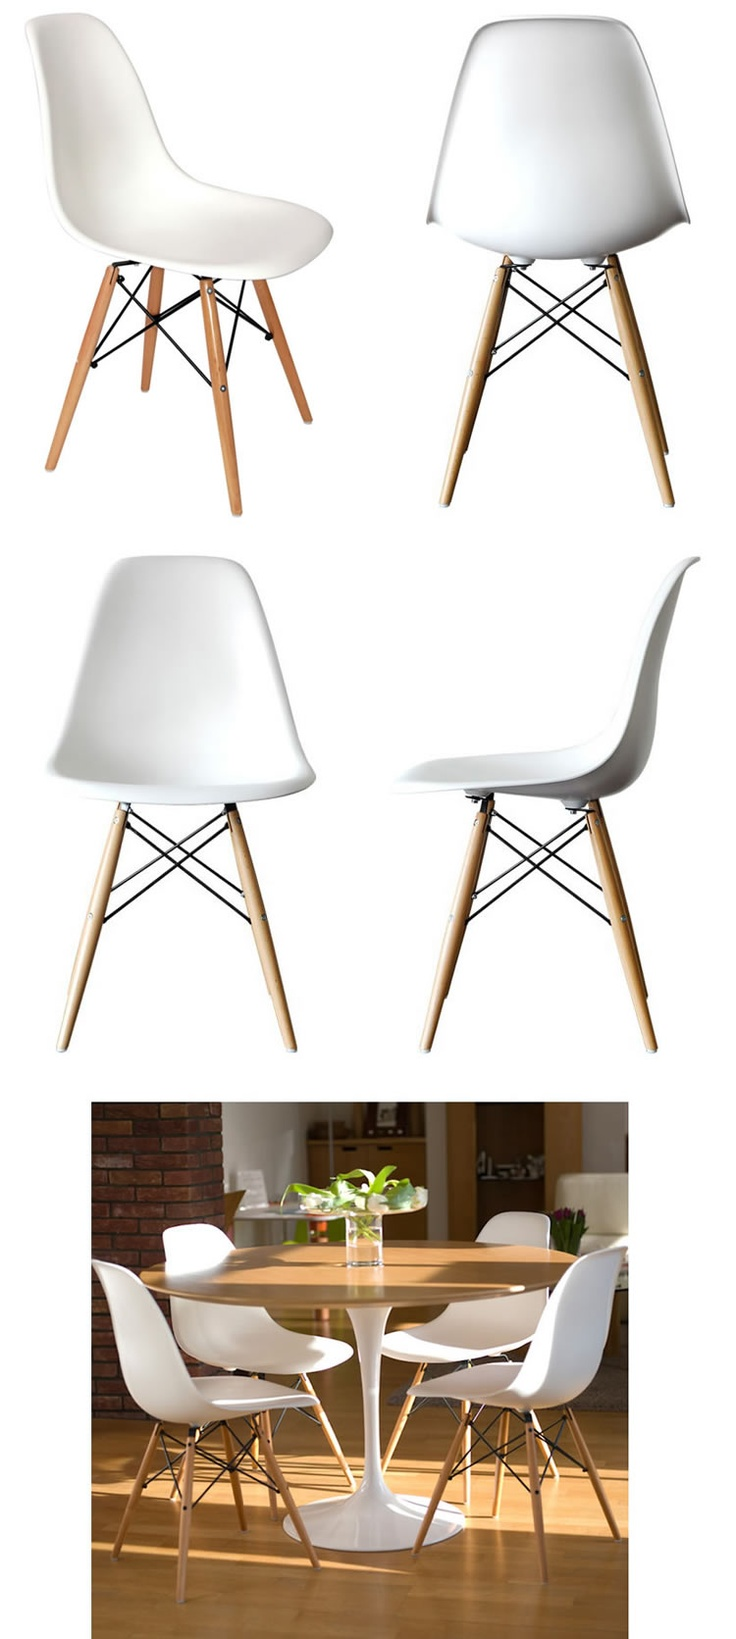 Eames DSW White Plastic Chair - Wooden Legs. For dining room.